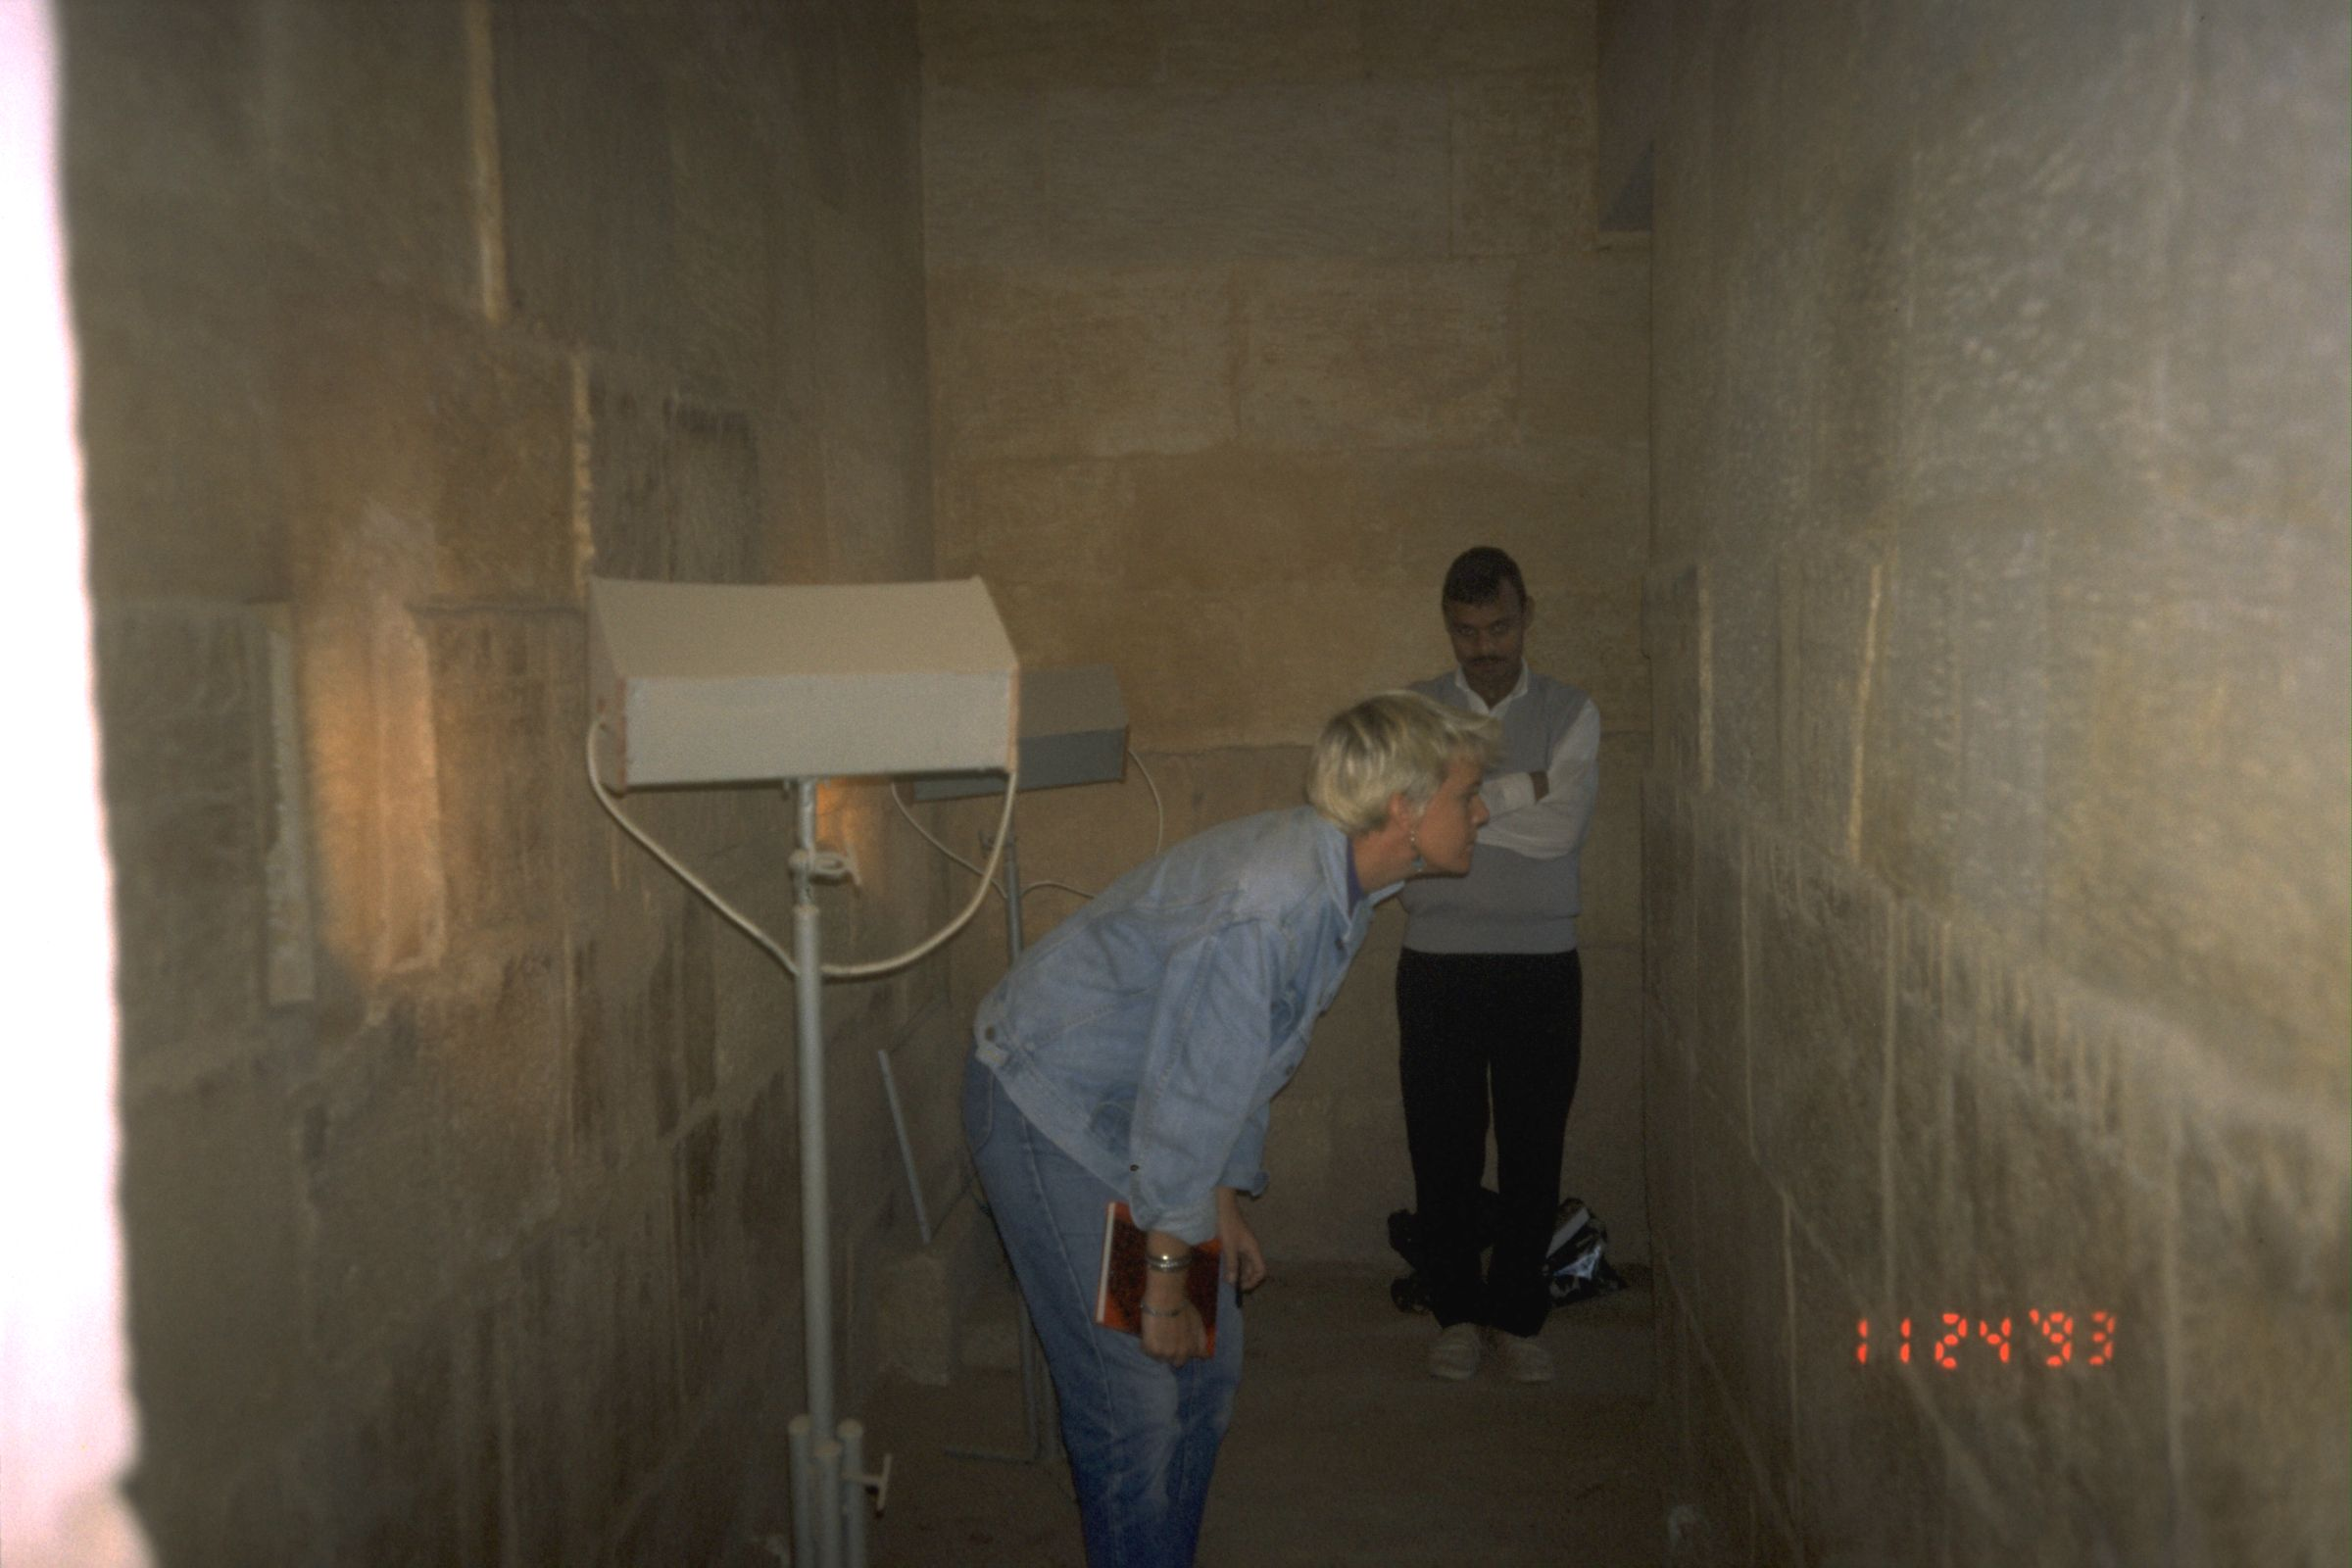 People & places: Site: Giza; View: G 2370